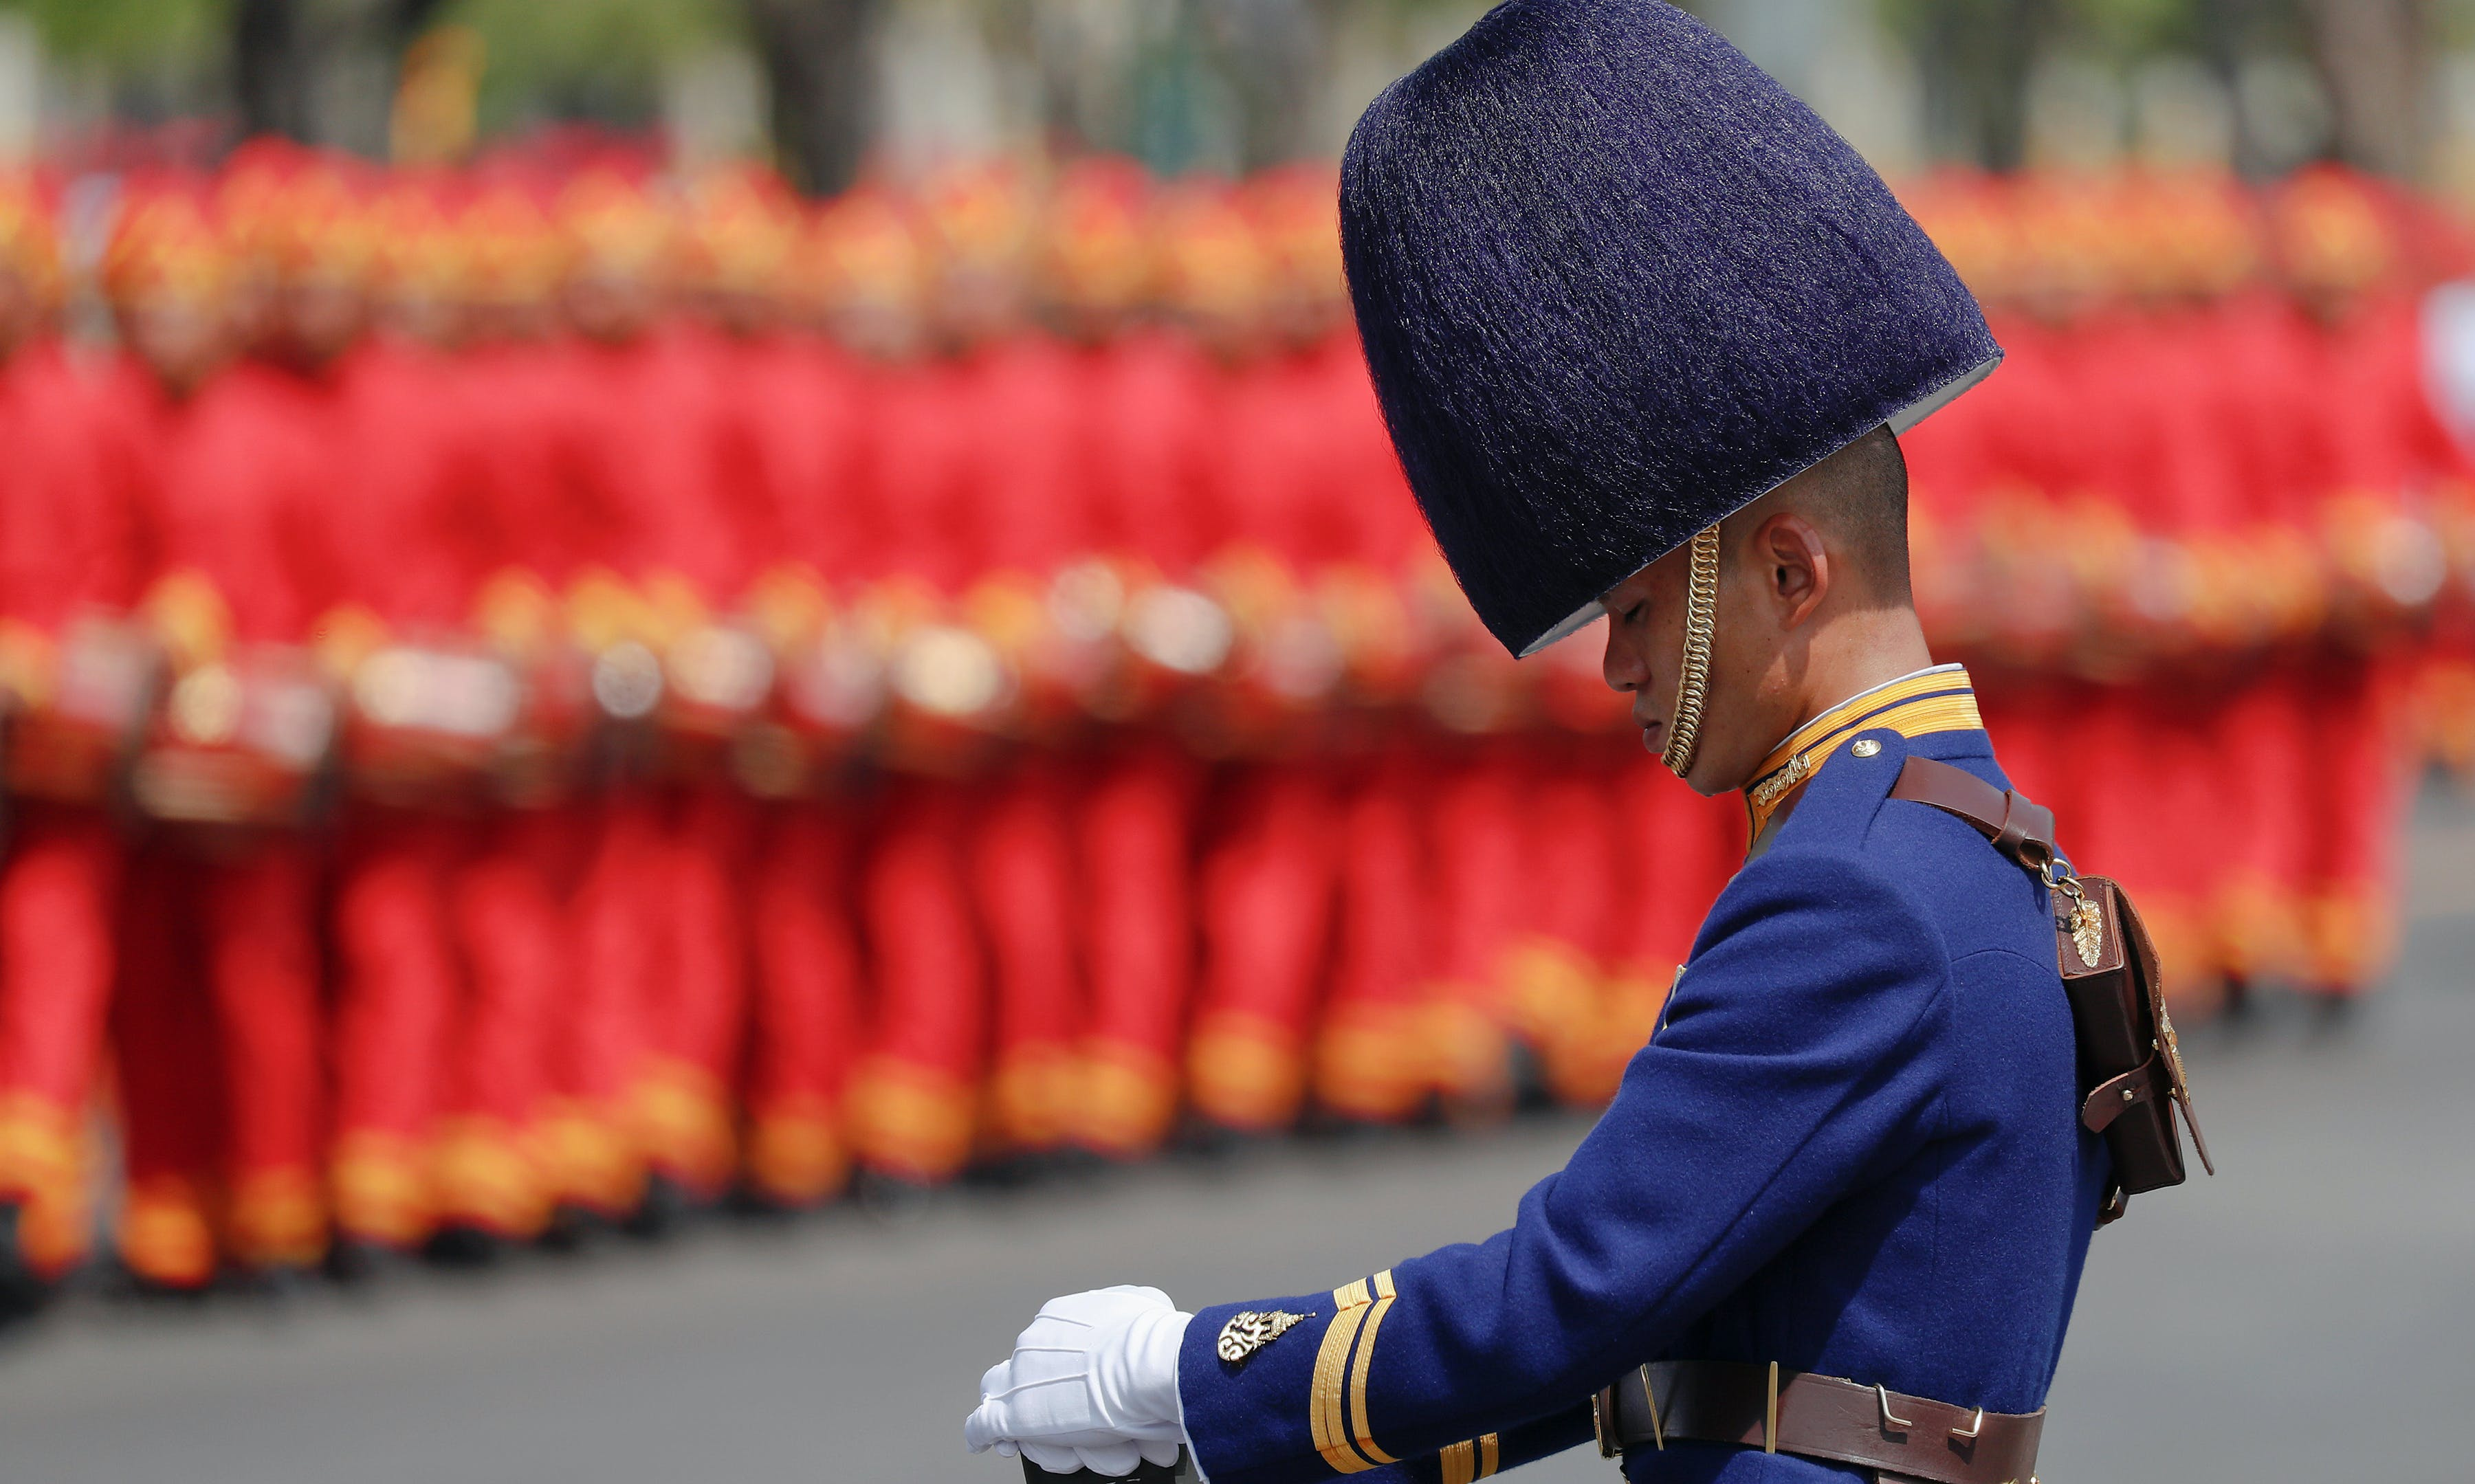 Thailand Prepares for Its First Elections Since the Passing of King Bhumibol